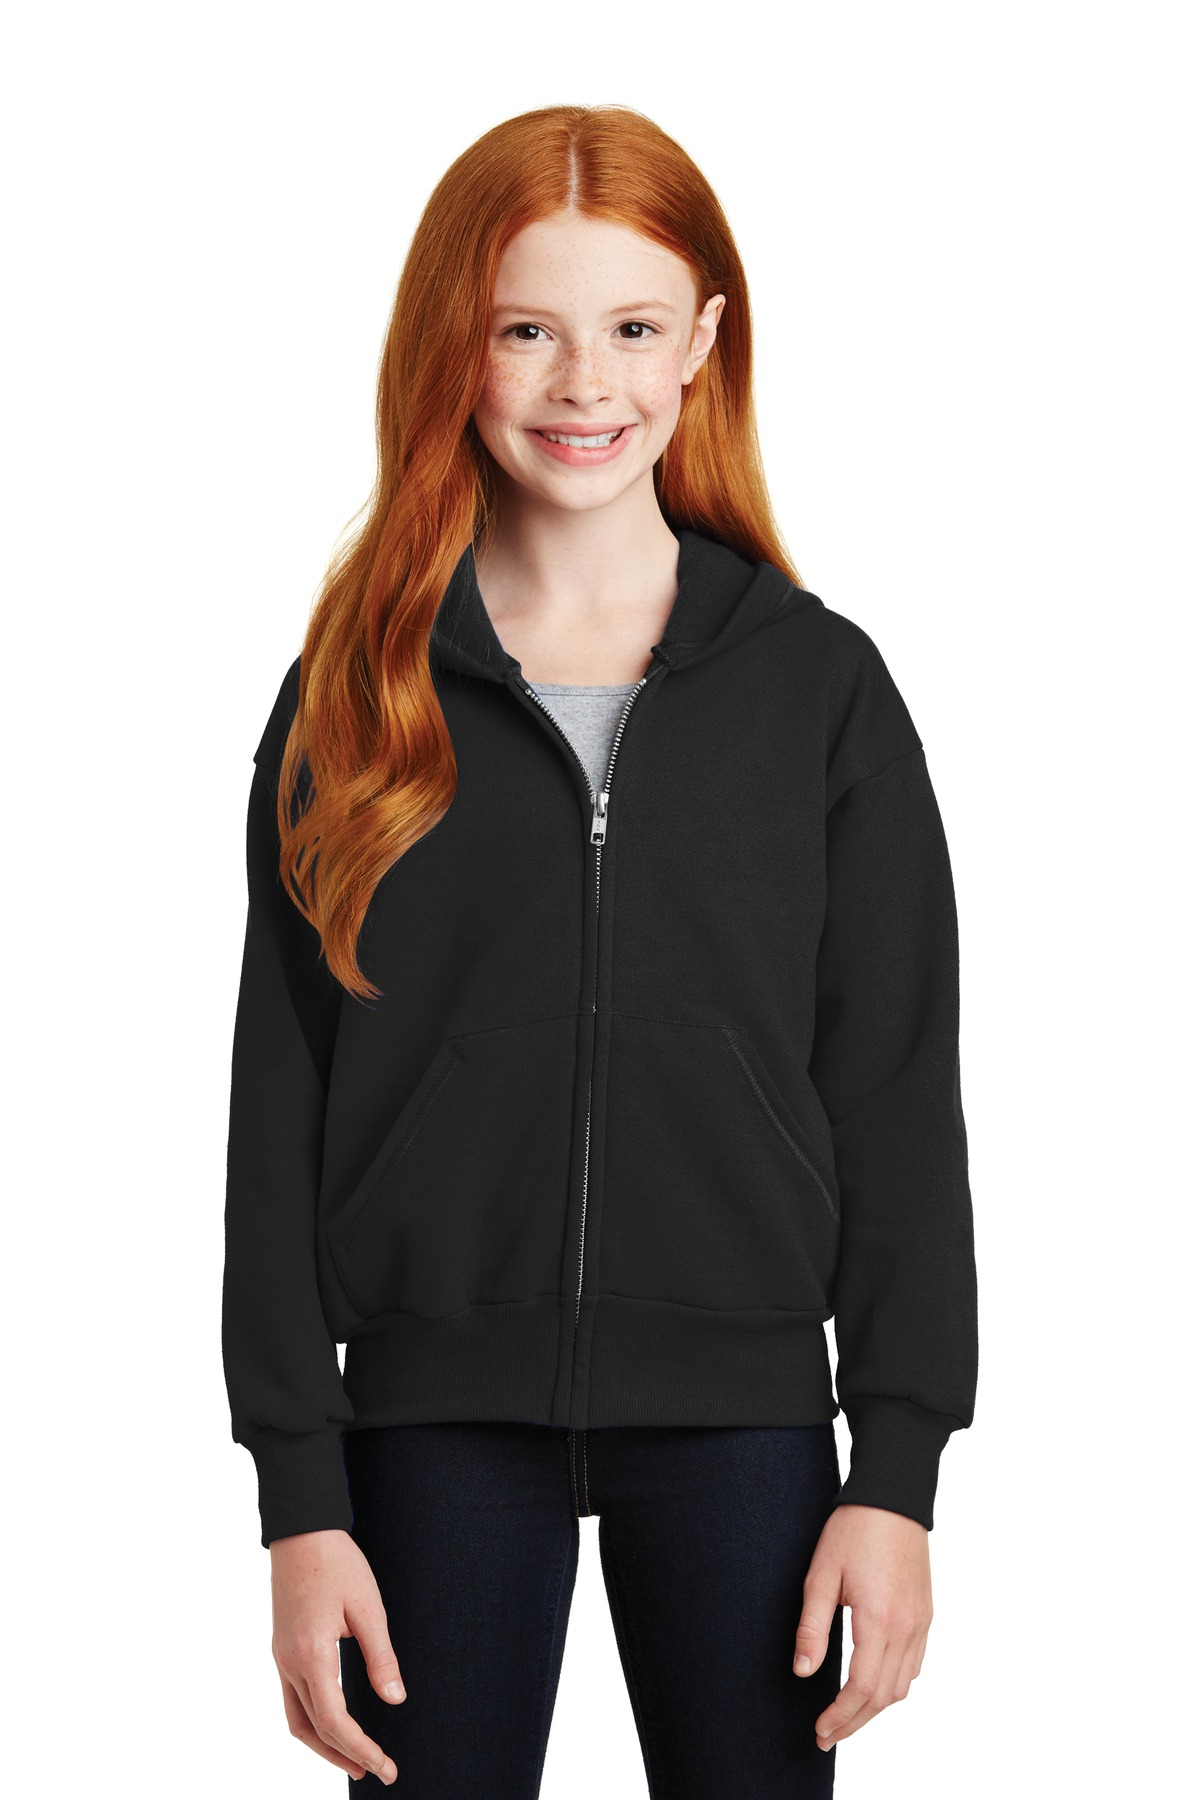 Hanes ®  - Youth EcoSmart ®  Full-Zip Hooded Sweatshirt. P480 - Black